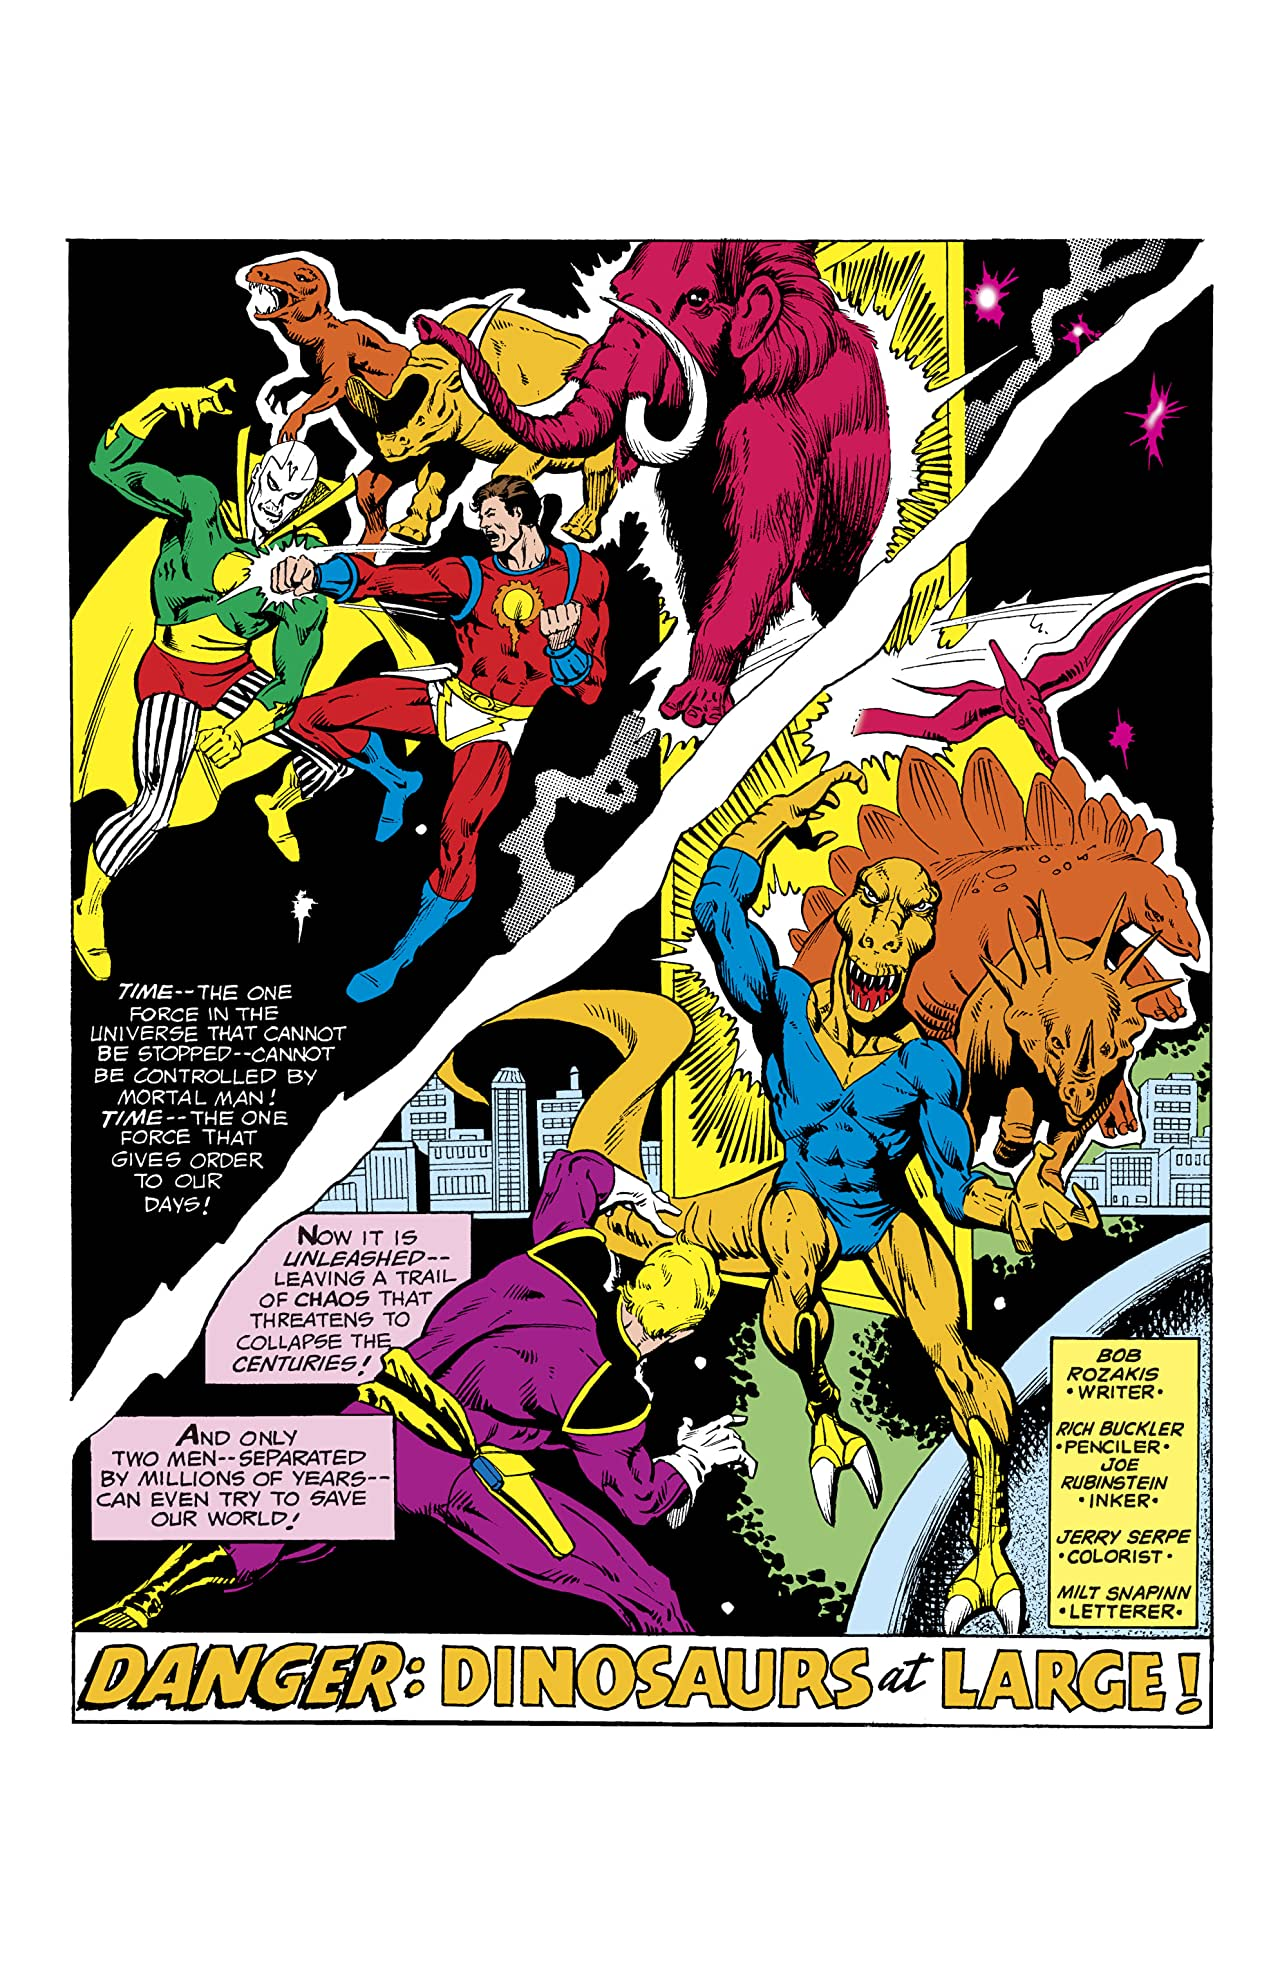 DC Special (1968-1977) #27